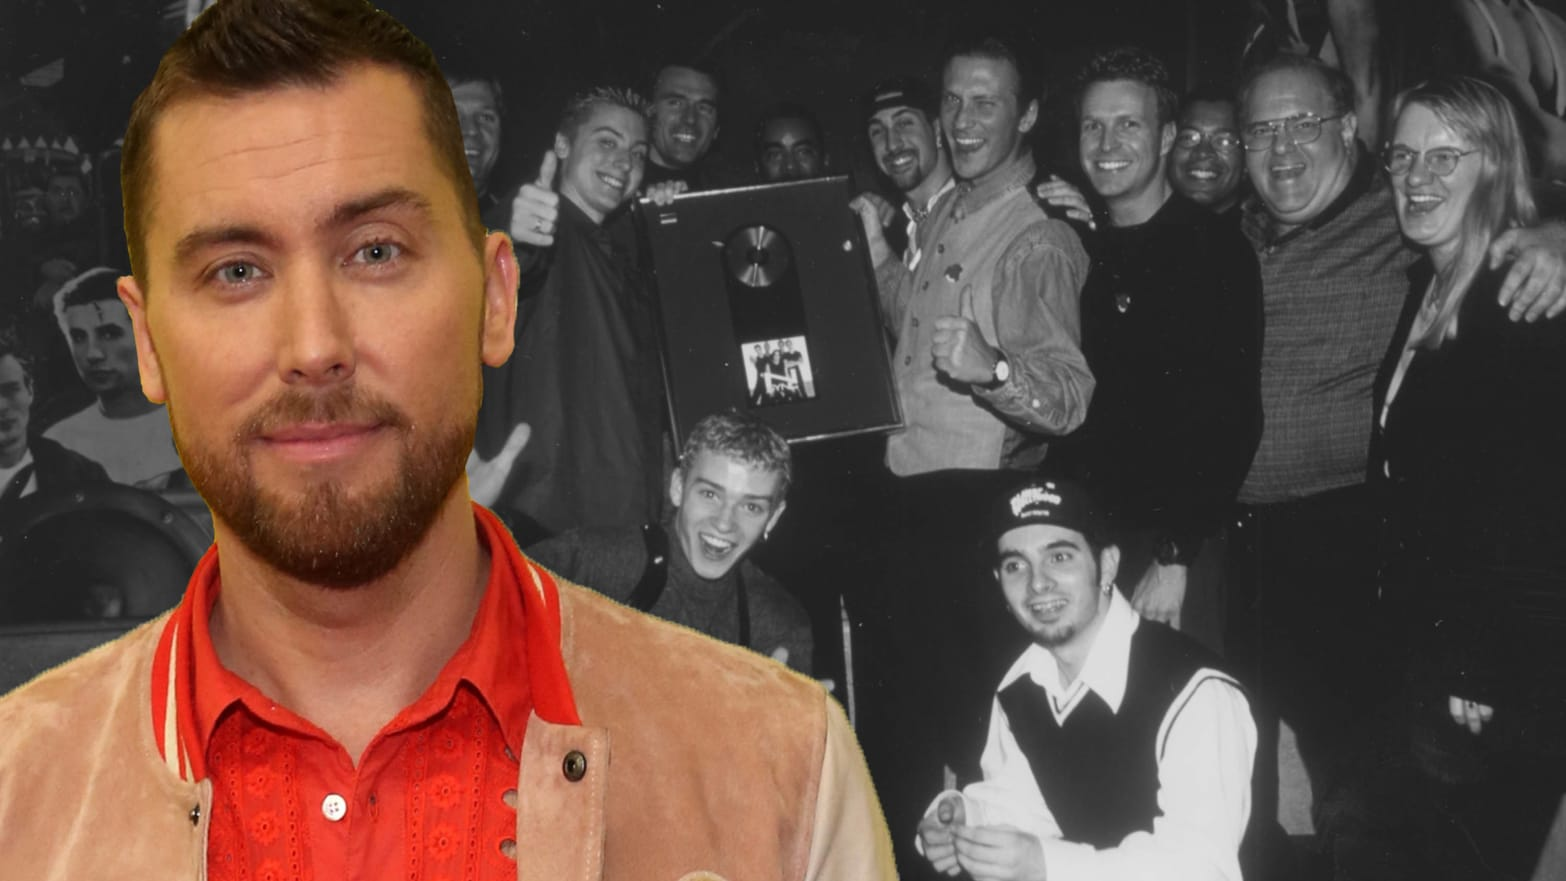 Lance Bass on How Lou Pearlman, the Con Man Behind NSYNC and the Backstreet Boys, Preyed on Young Stars